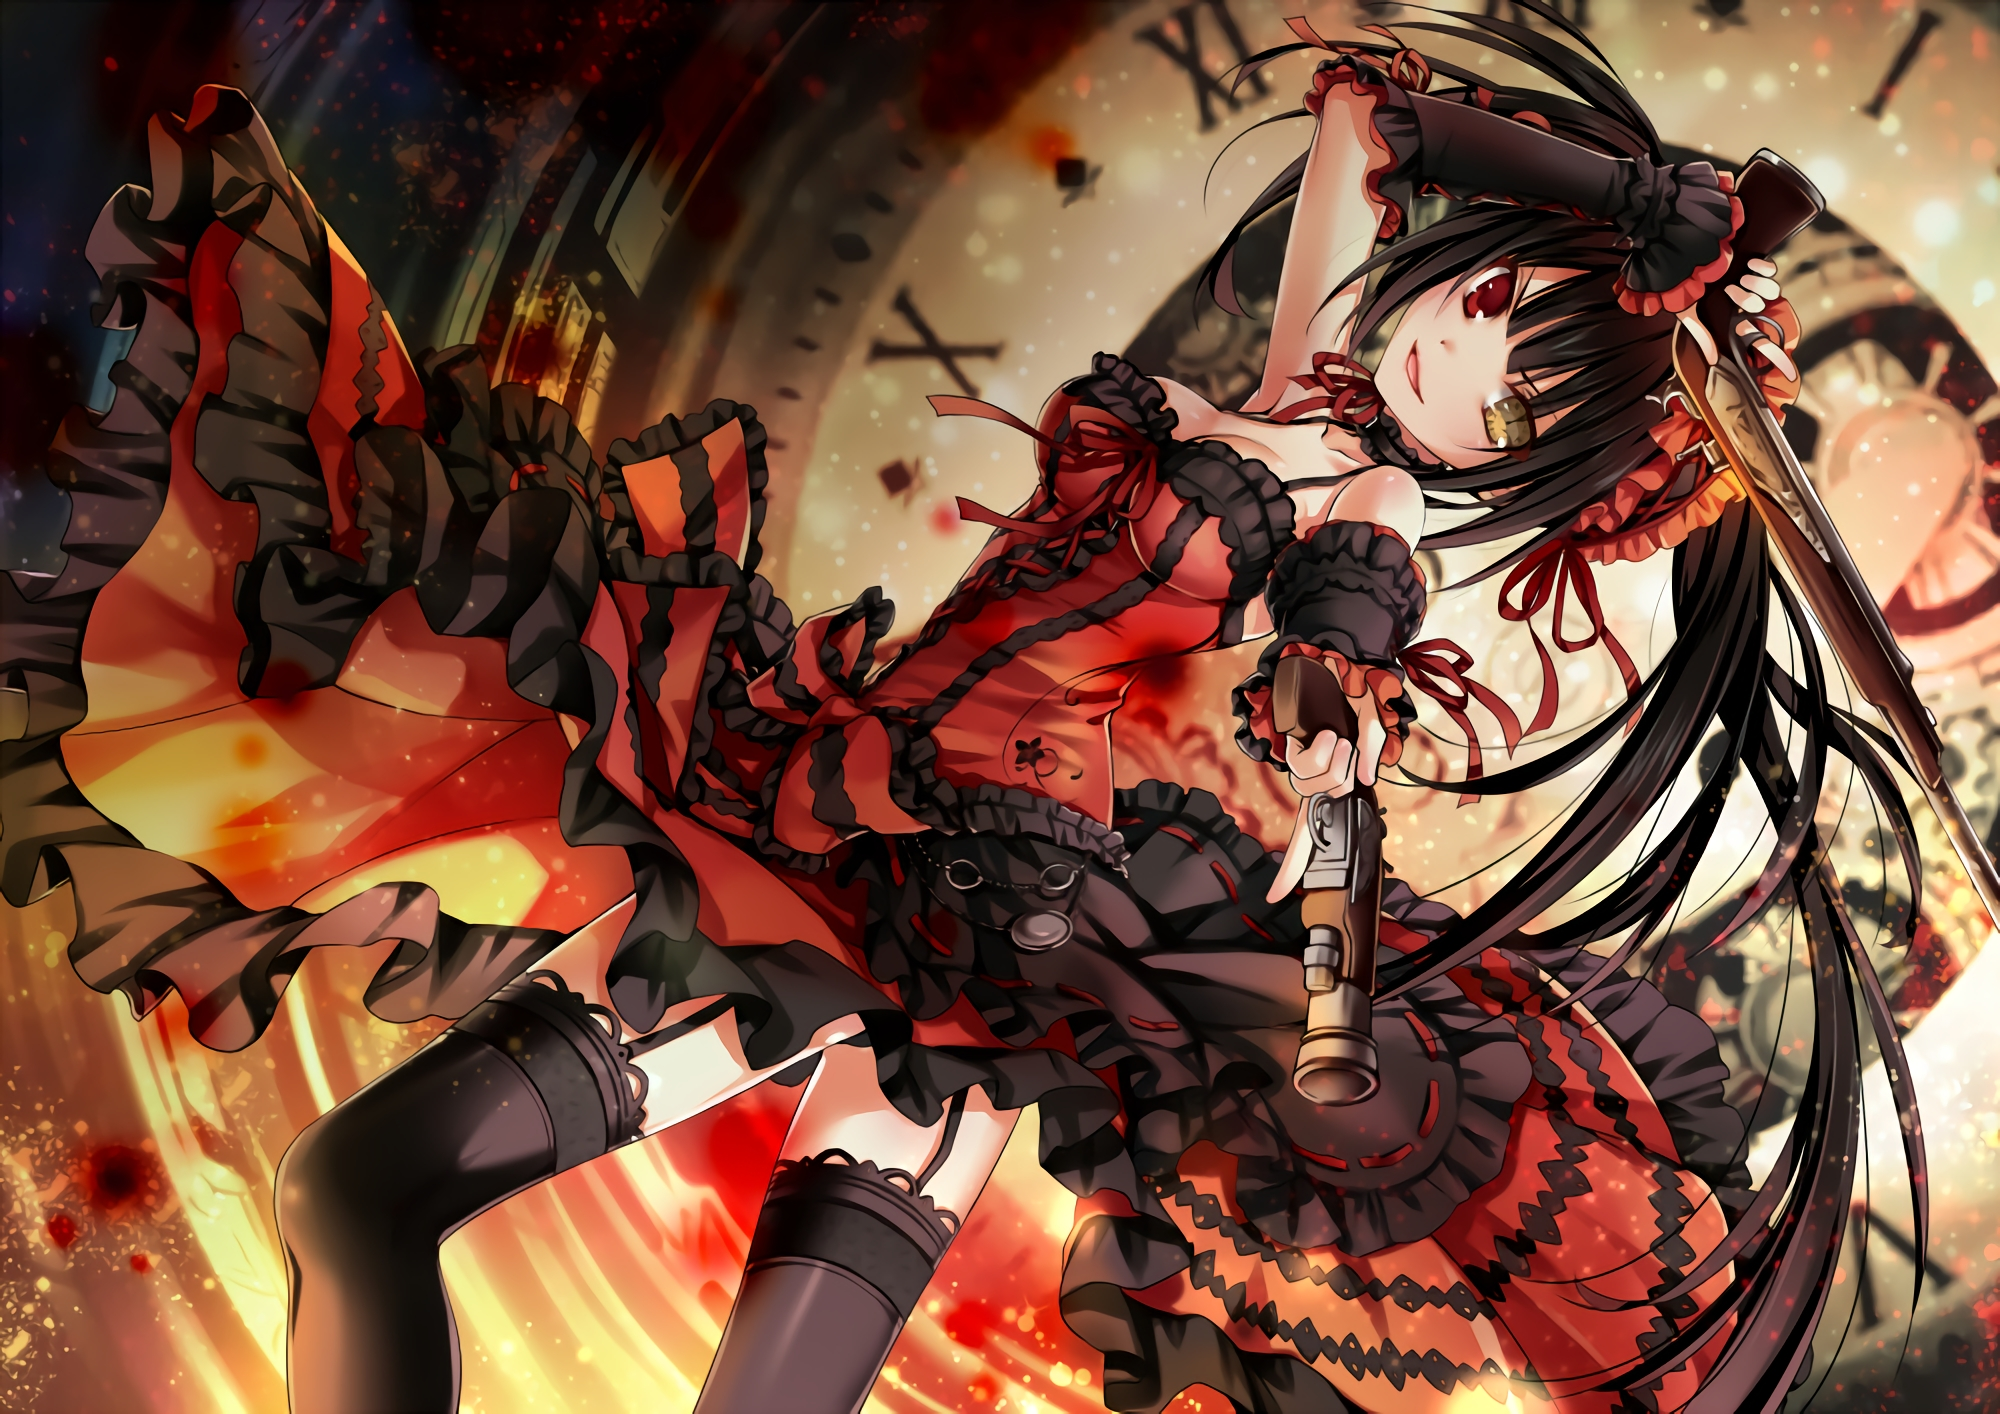 113 kurumi tokisaki hd wallpapers | background images - wallpaper abyss